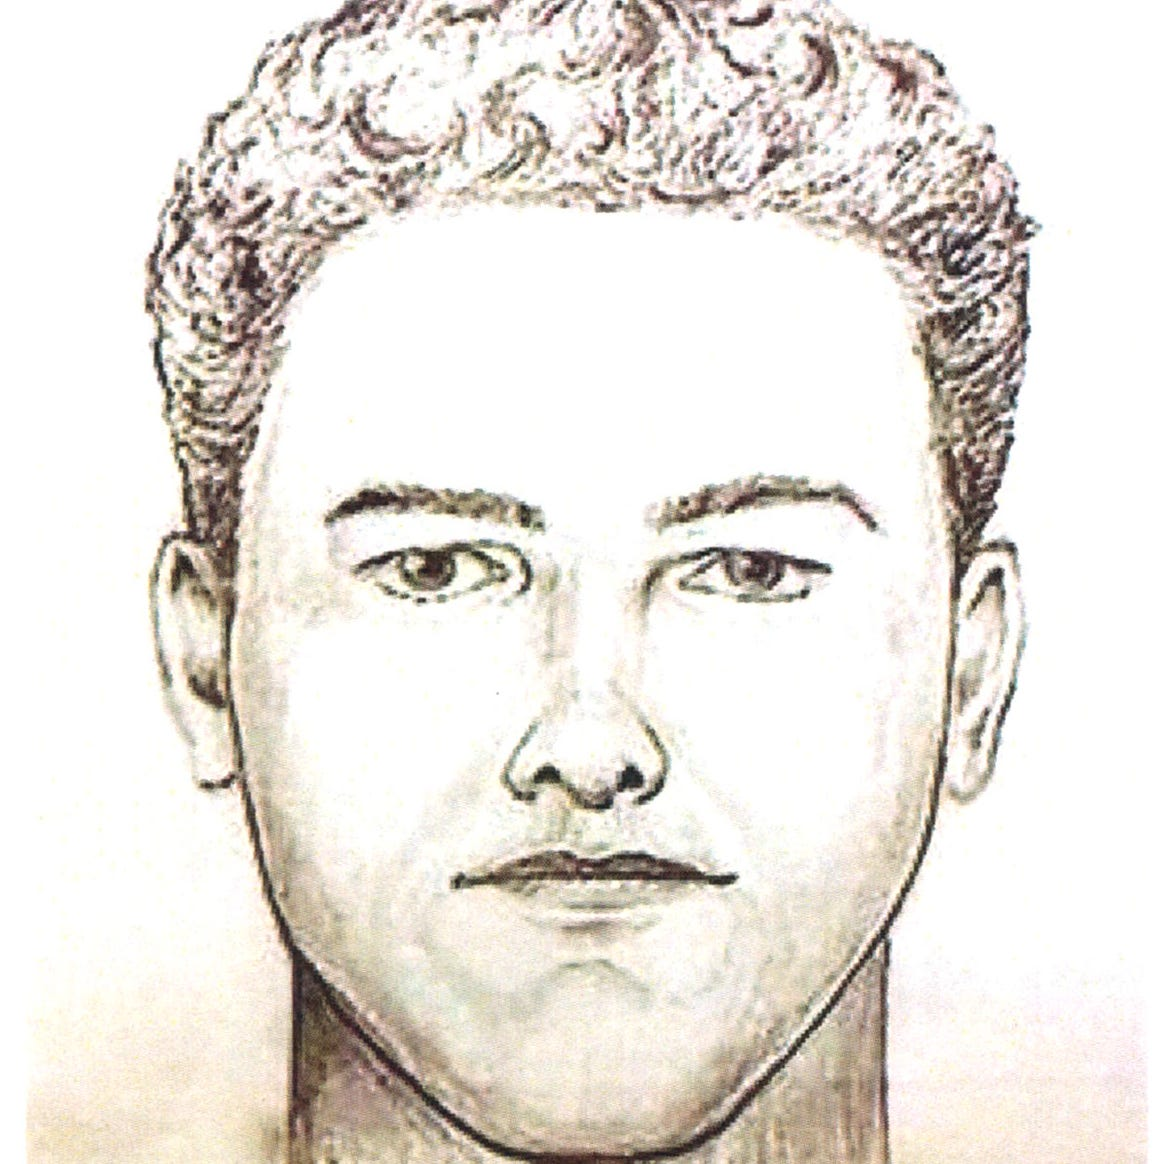 Delphi murders: Investigators have had newly released suspect sketch for 2 years